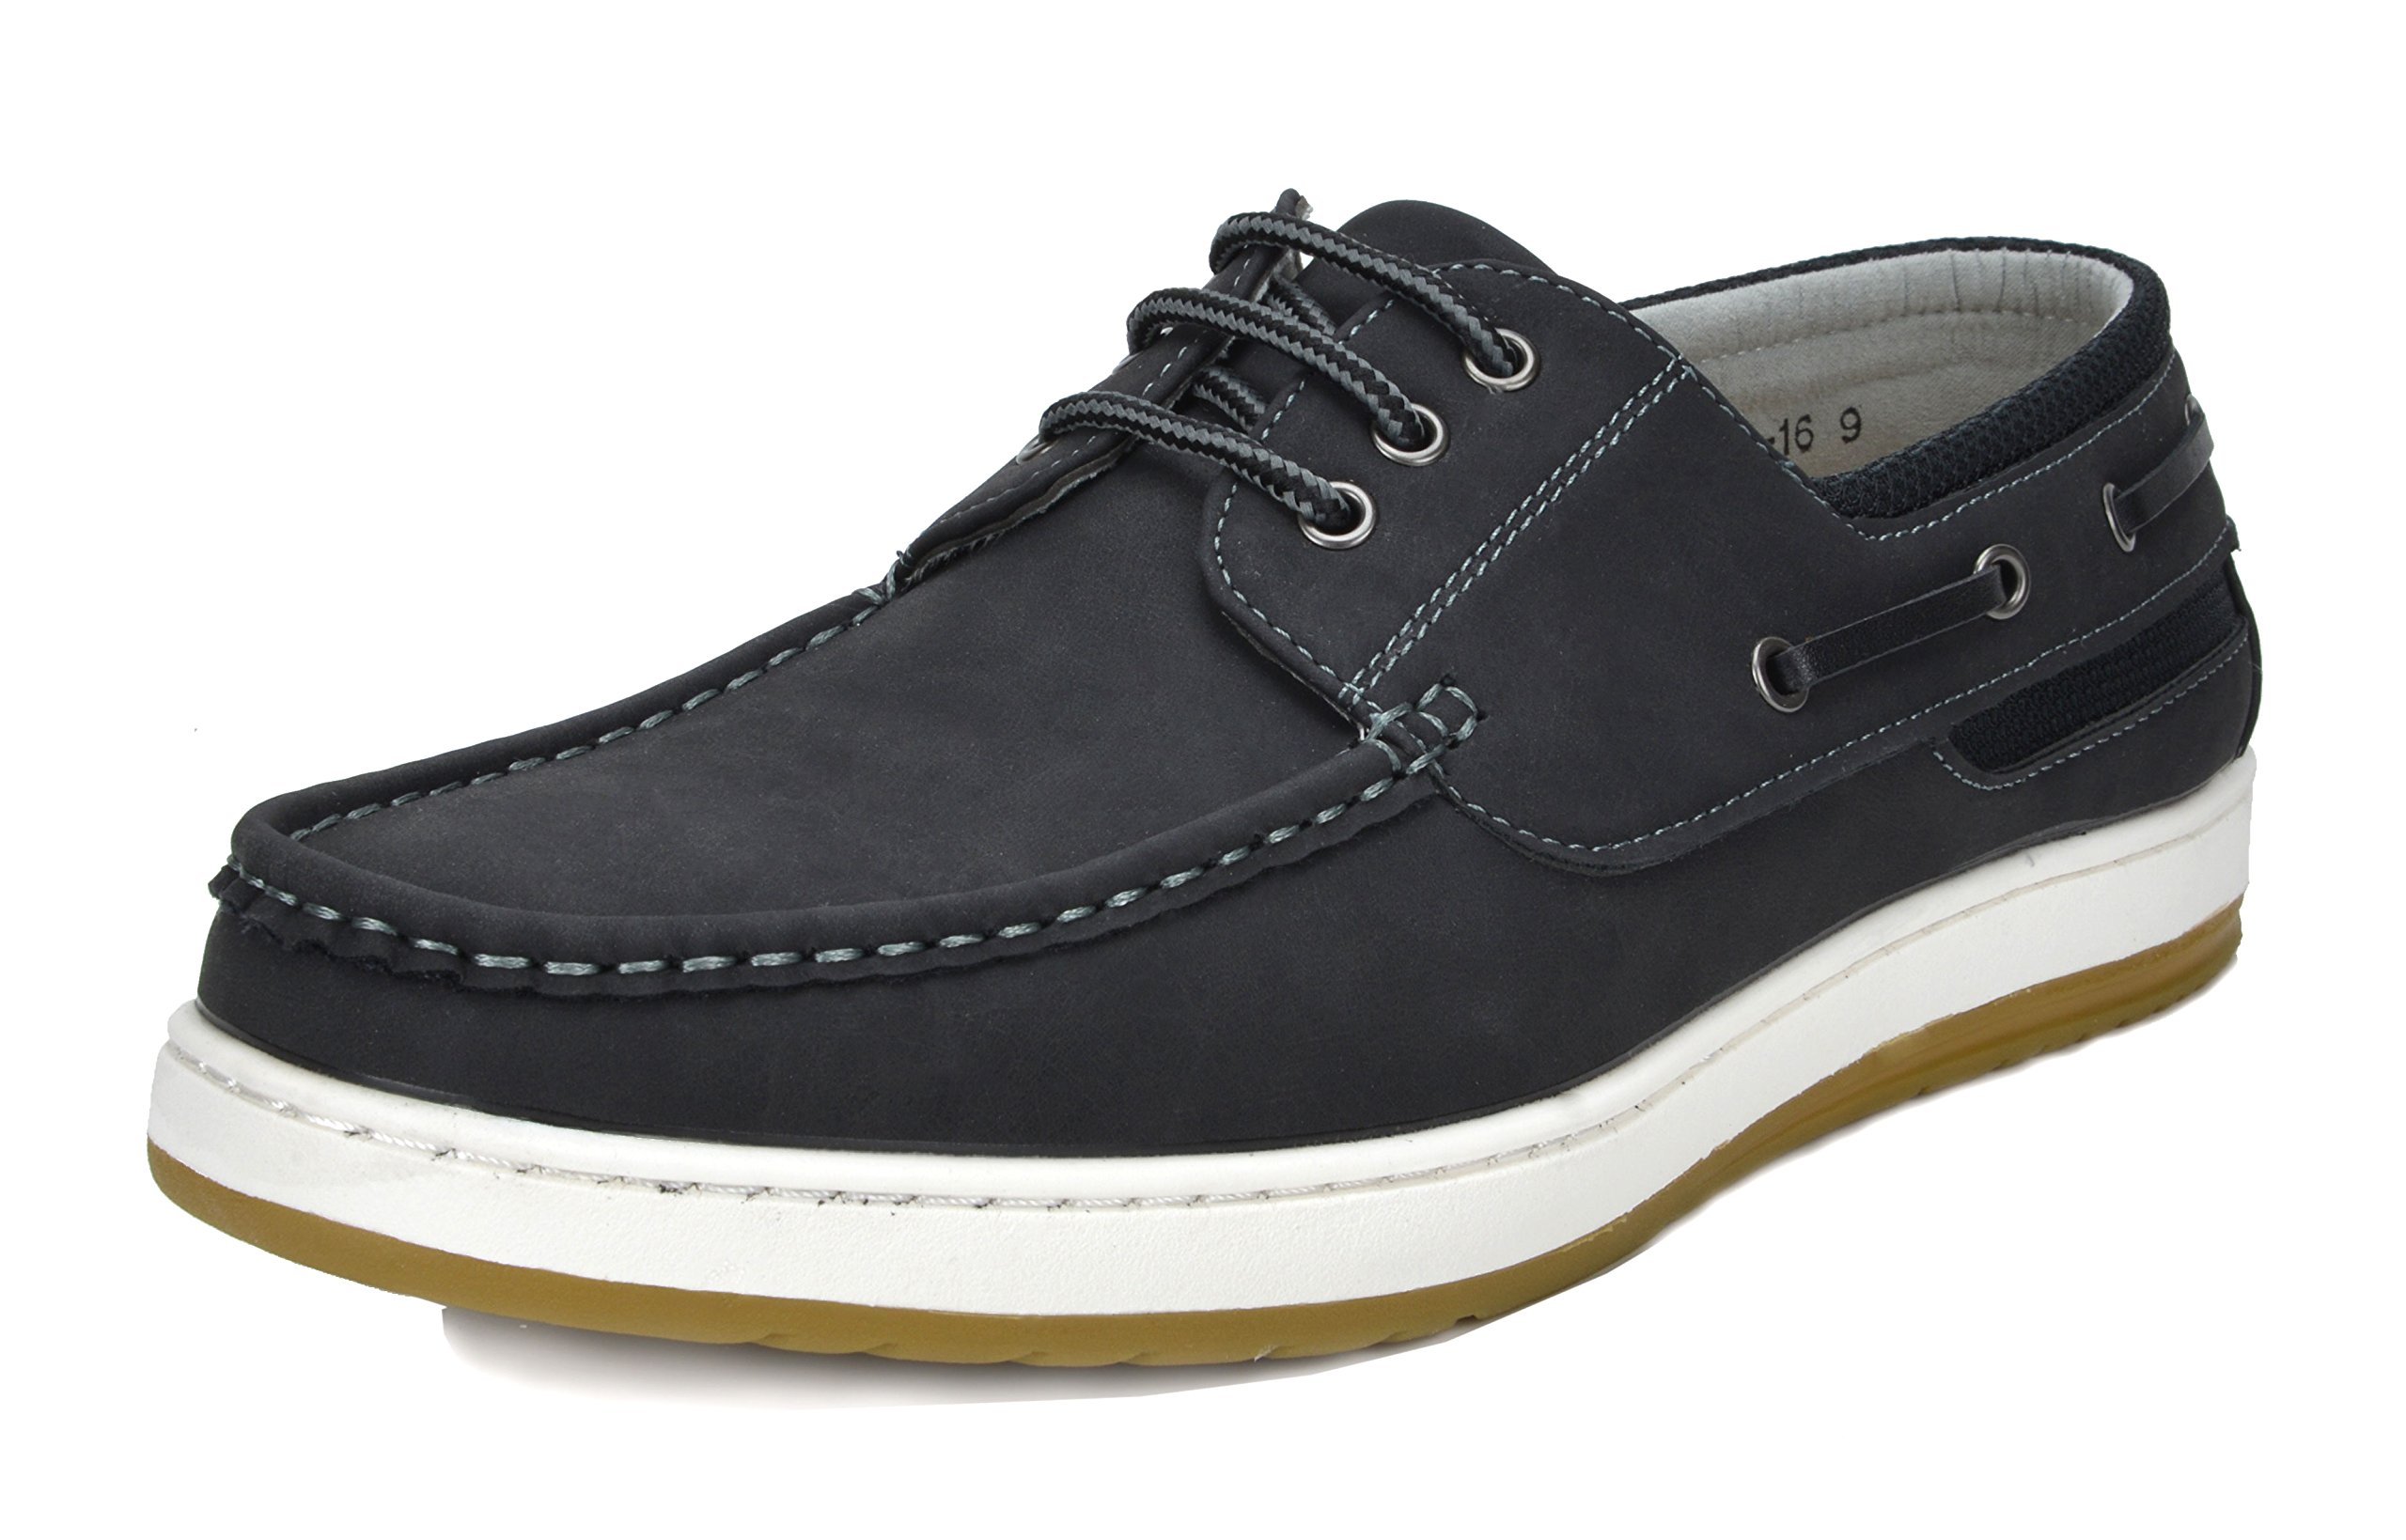 Bruno Marc Men's Pitts_16 BLK/BLK Oxfords Moccasins Boat Shoes Size 09.5 by Bruno Marc (Image #1)